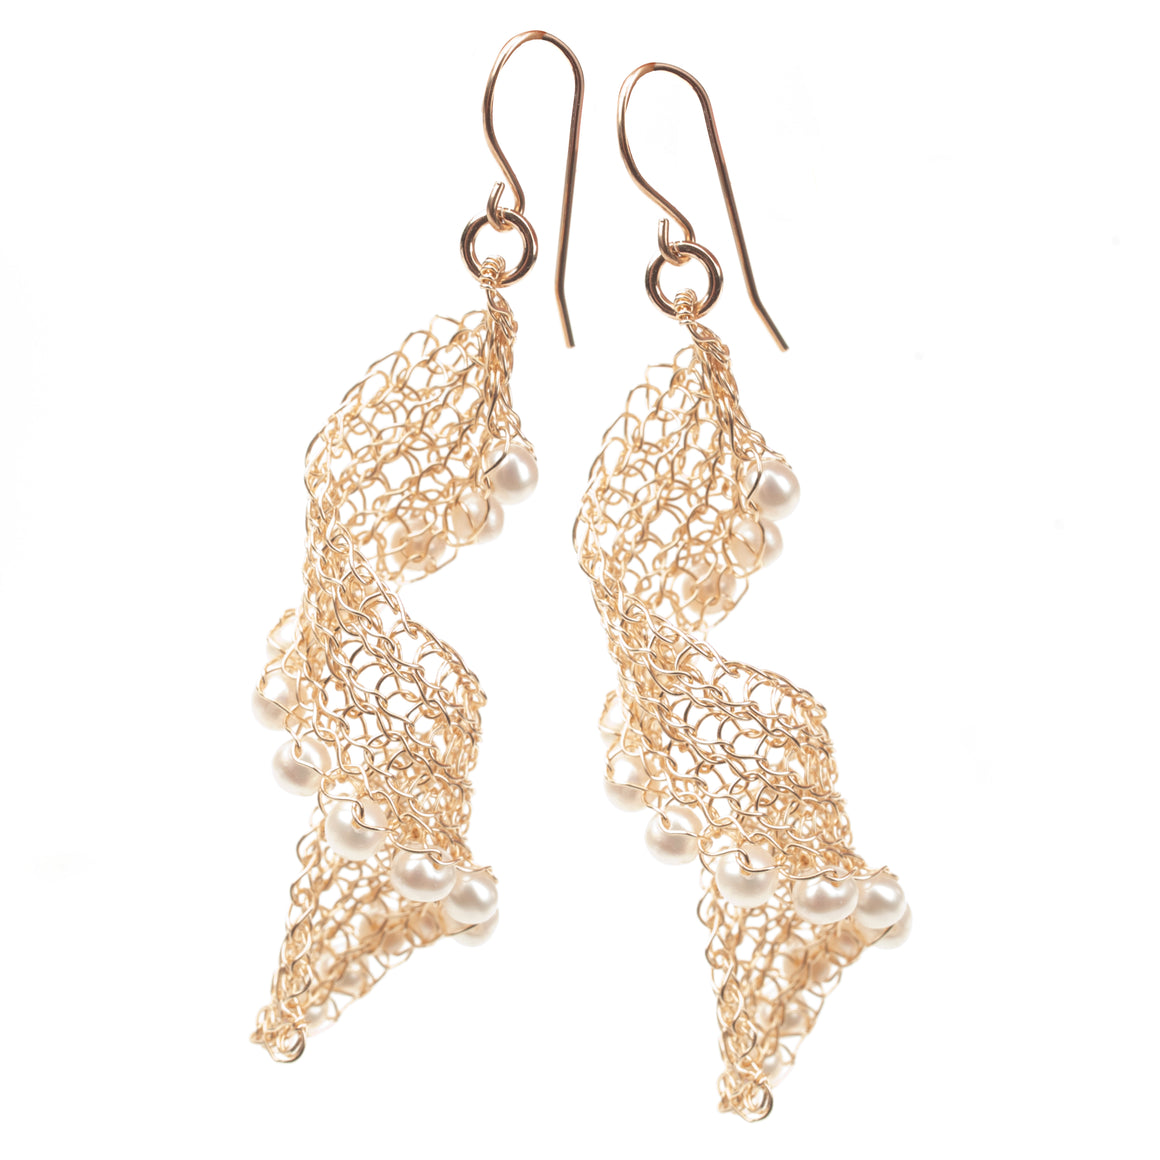 Infinity gold wire crochet earrings with pearls, long elegant knitted wire - Yooladesign